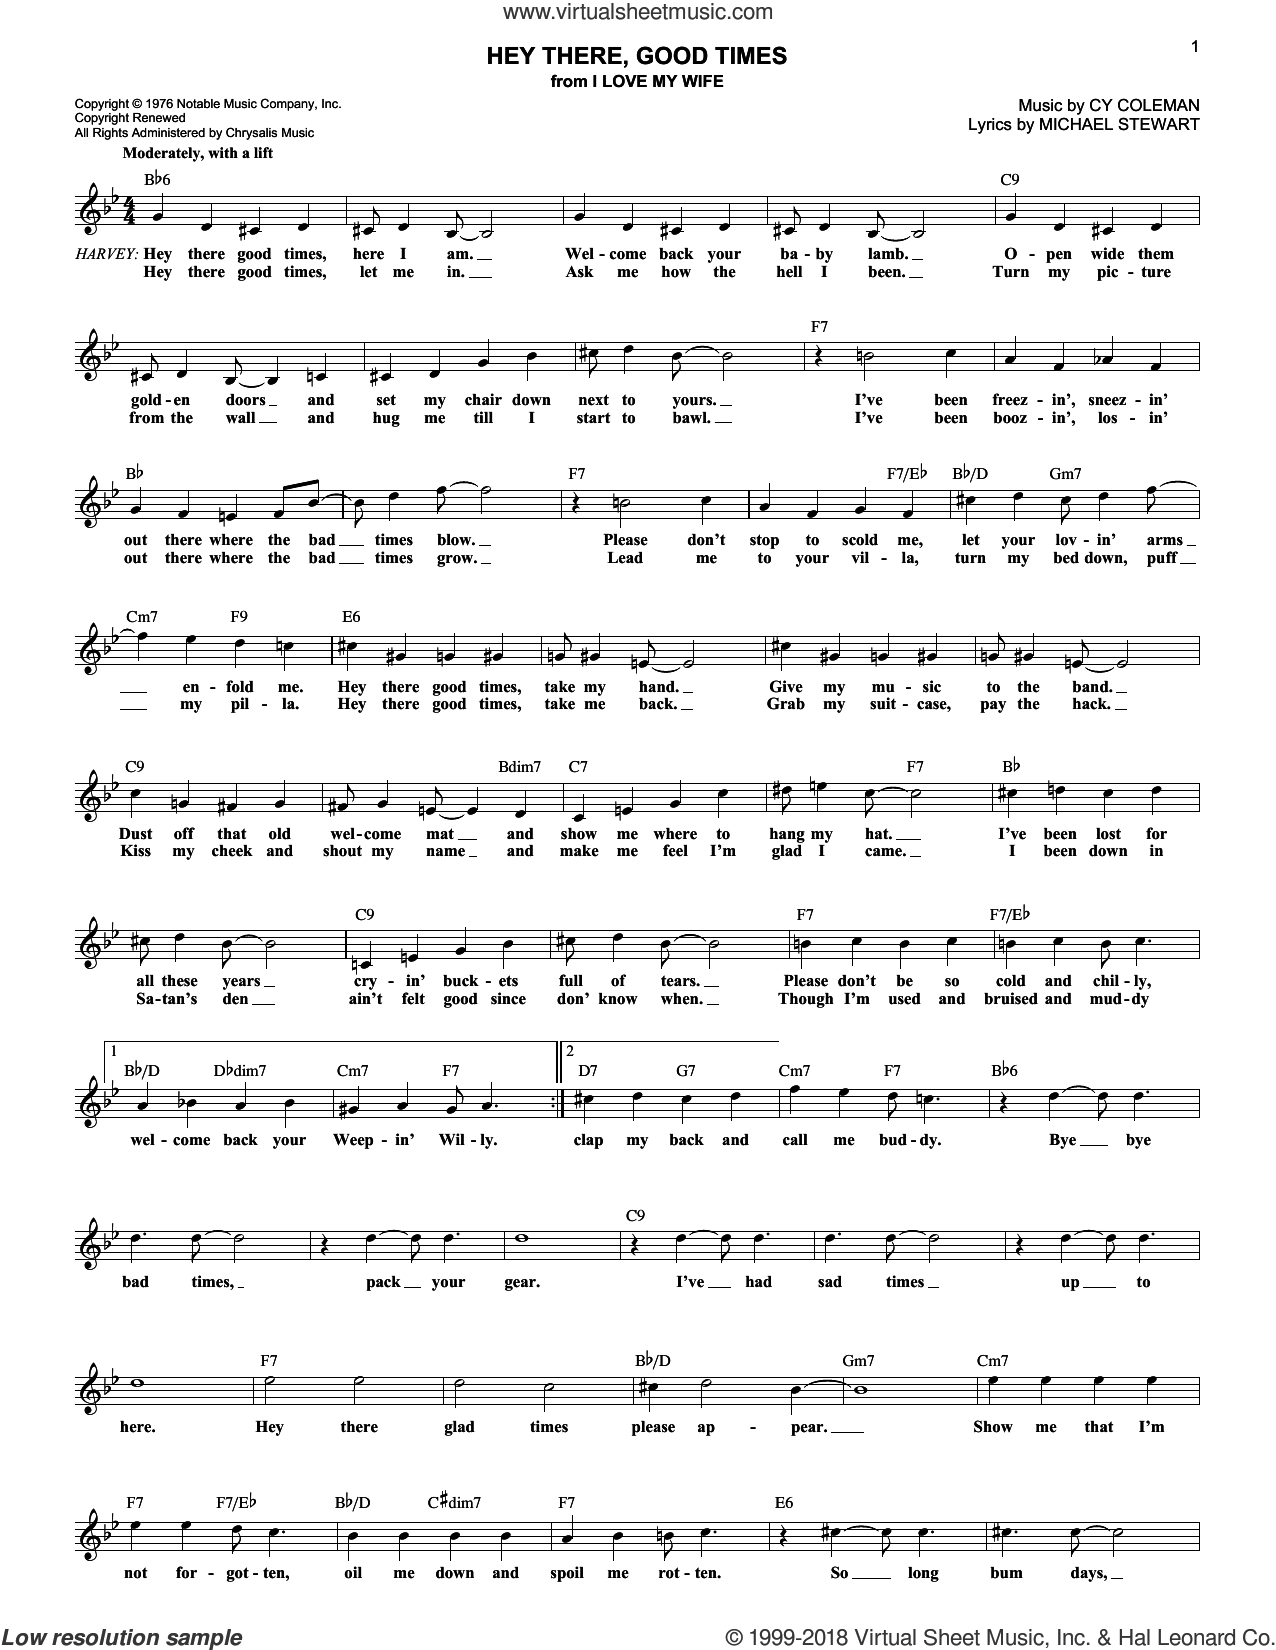 Hey There, Good Times sheet music for voice and other instruments (fake book) by Michael Stewart and Cy Coleman, intermediate skill level